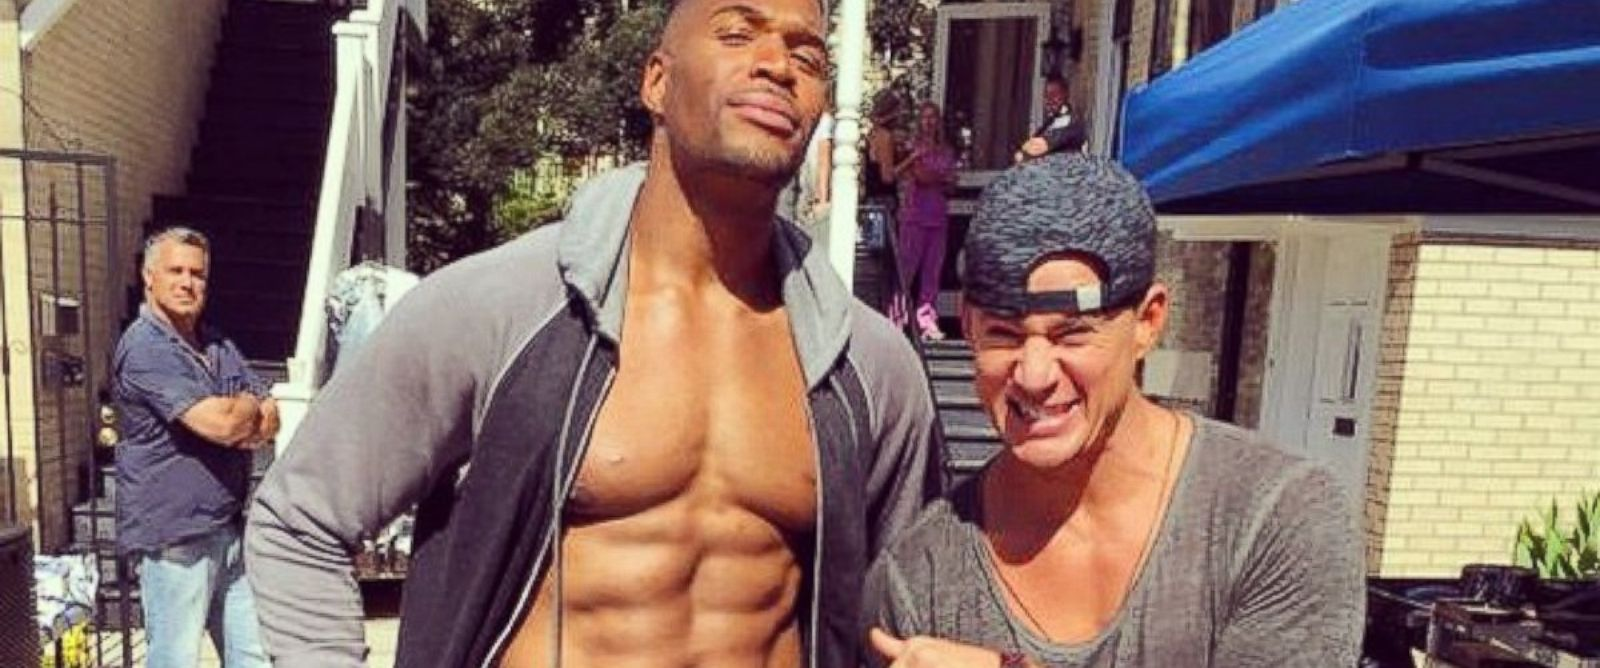 """PHOTO: Channing Tatum posted this photo on Instagram with this caption: """" #MichaelStrahan sure is looking ab-tastic on the set of #MagicMikeXXL with #ChanningTatum!"""" Oct. 21, 2014."""